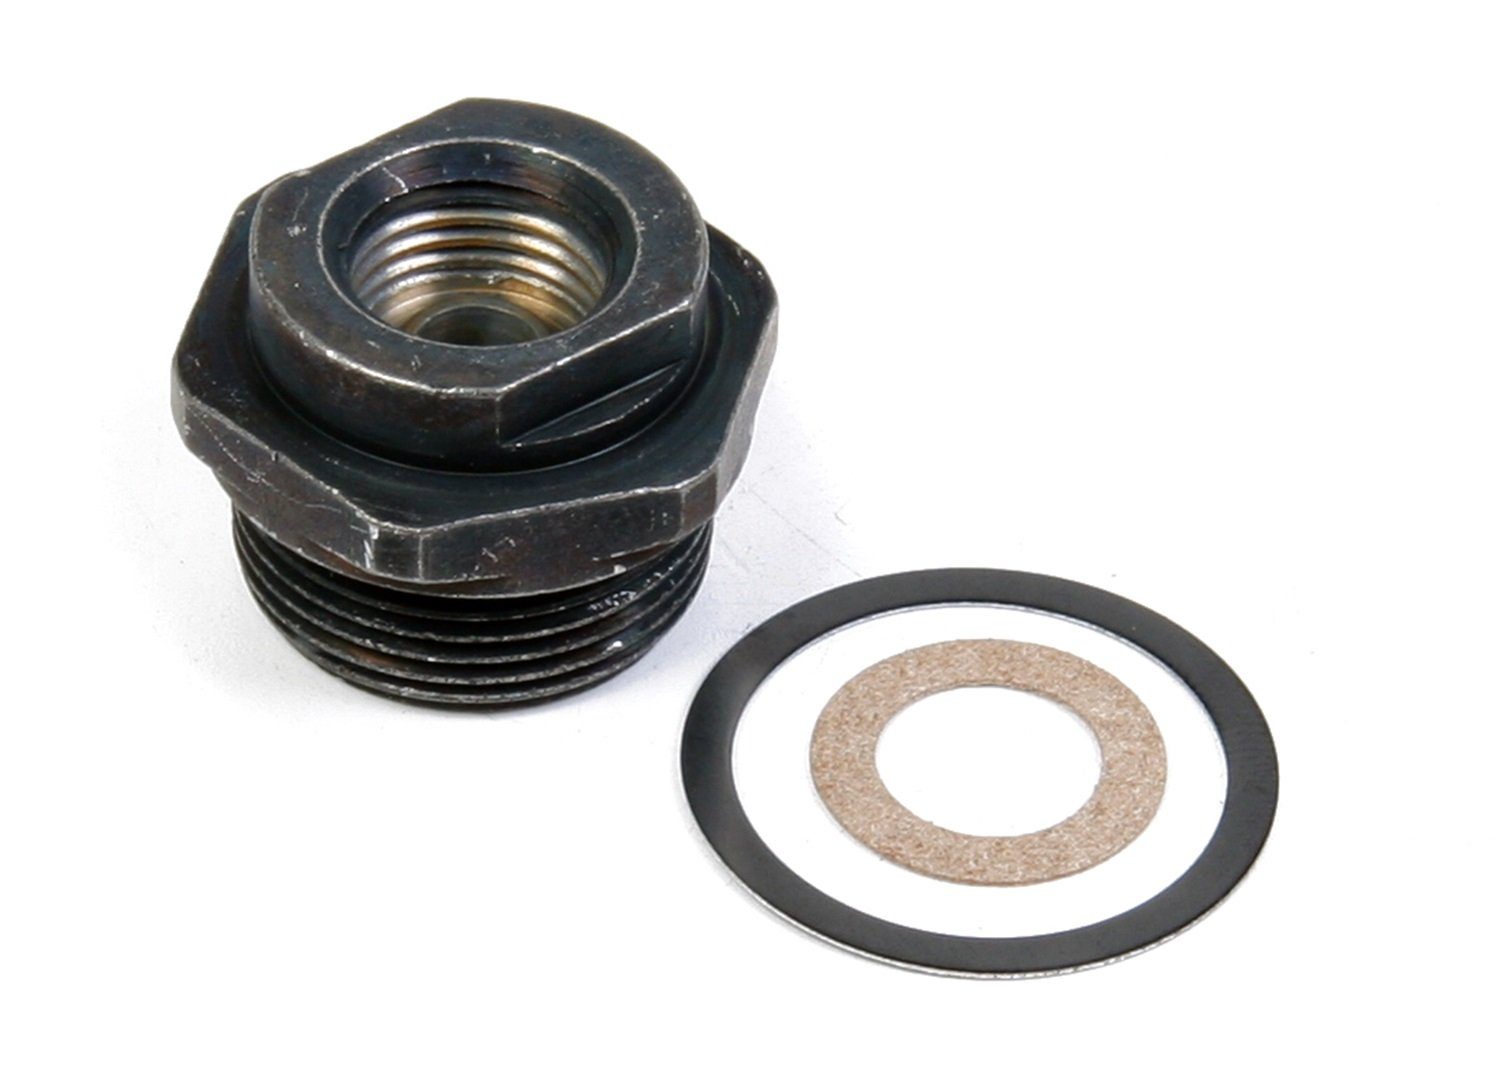 Holley 26-27 Fuel Fitting HOL 26-27